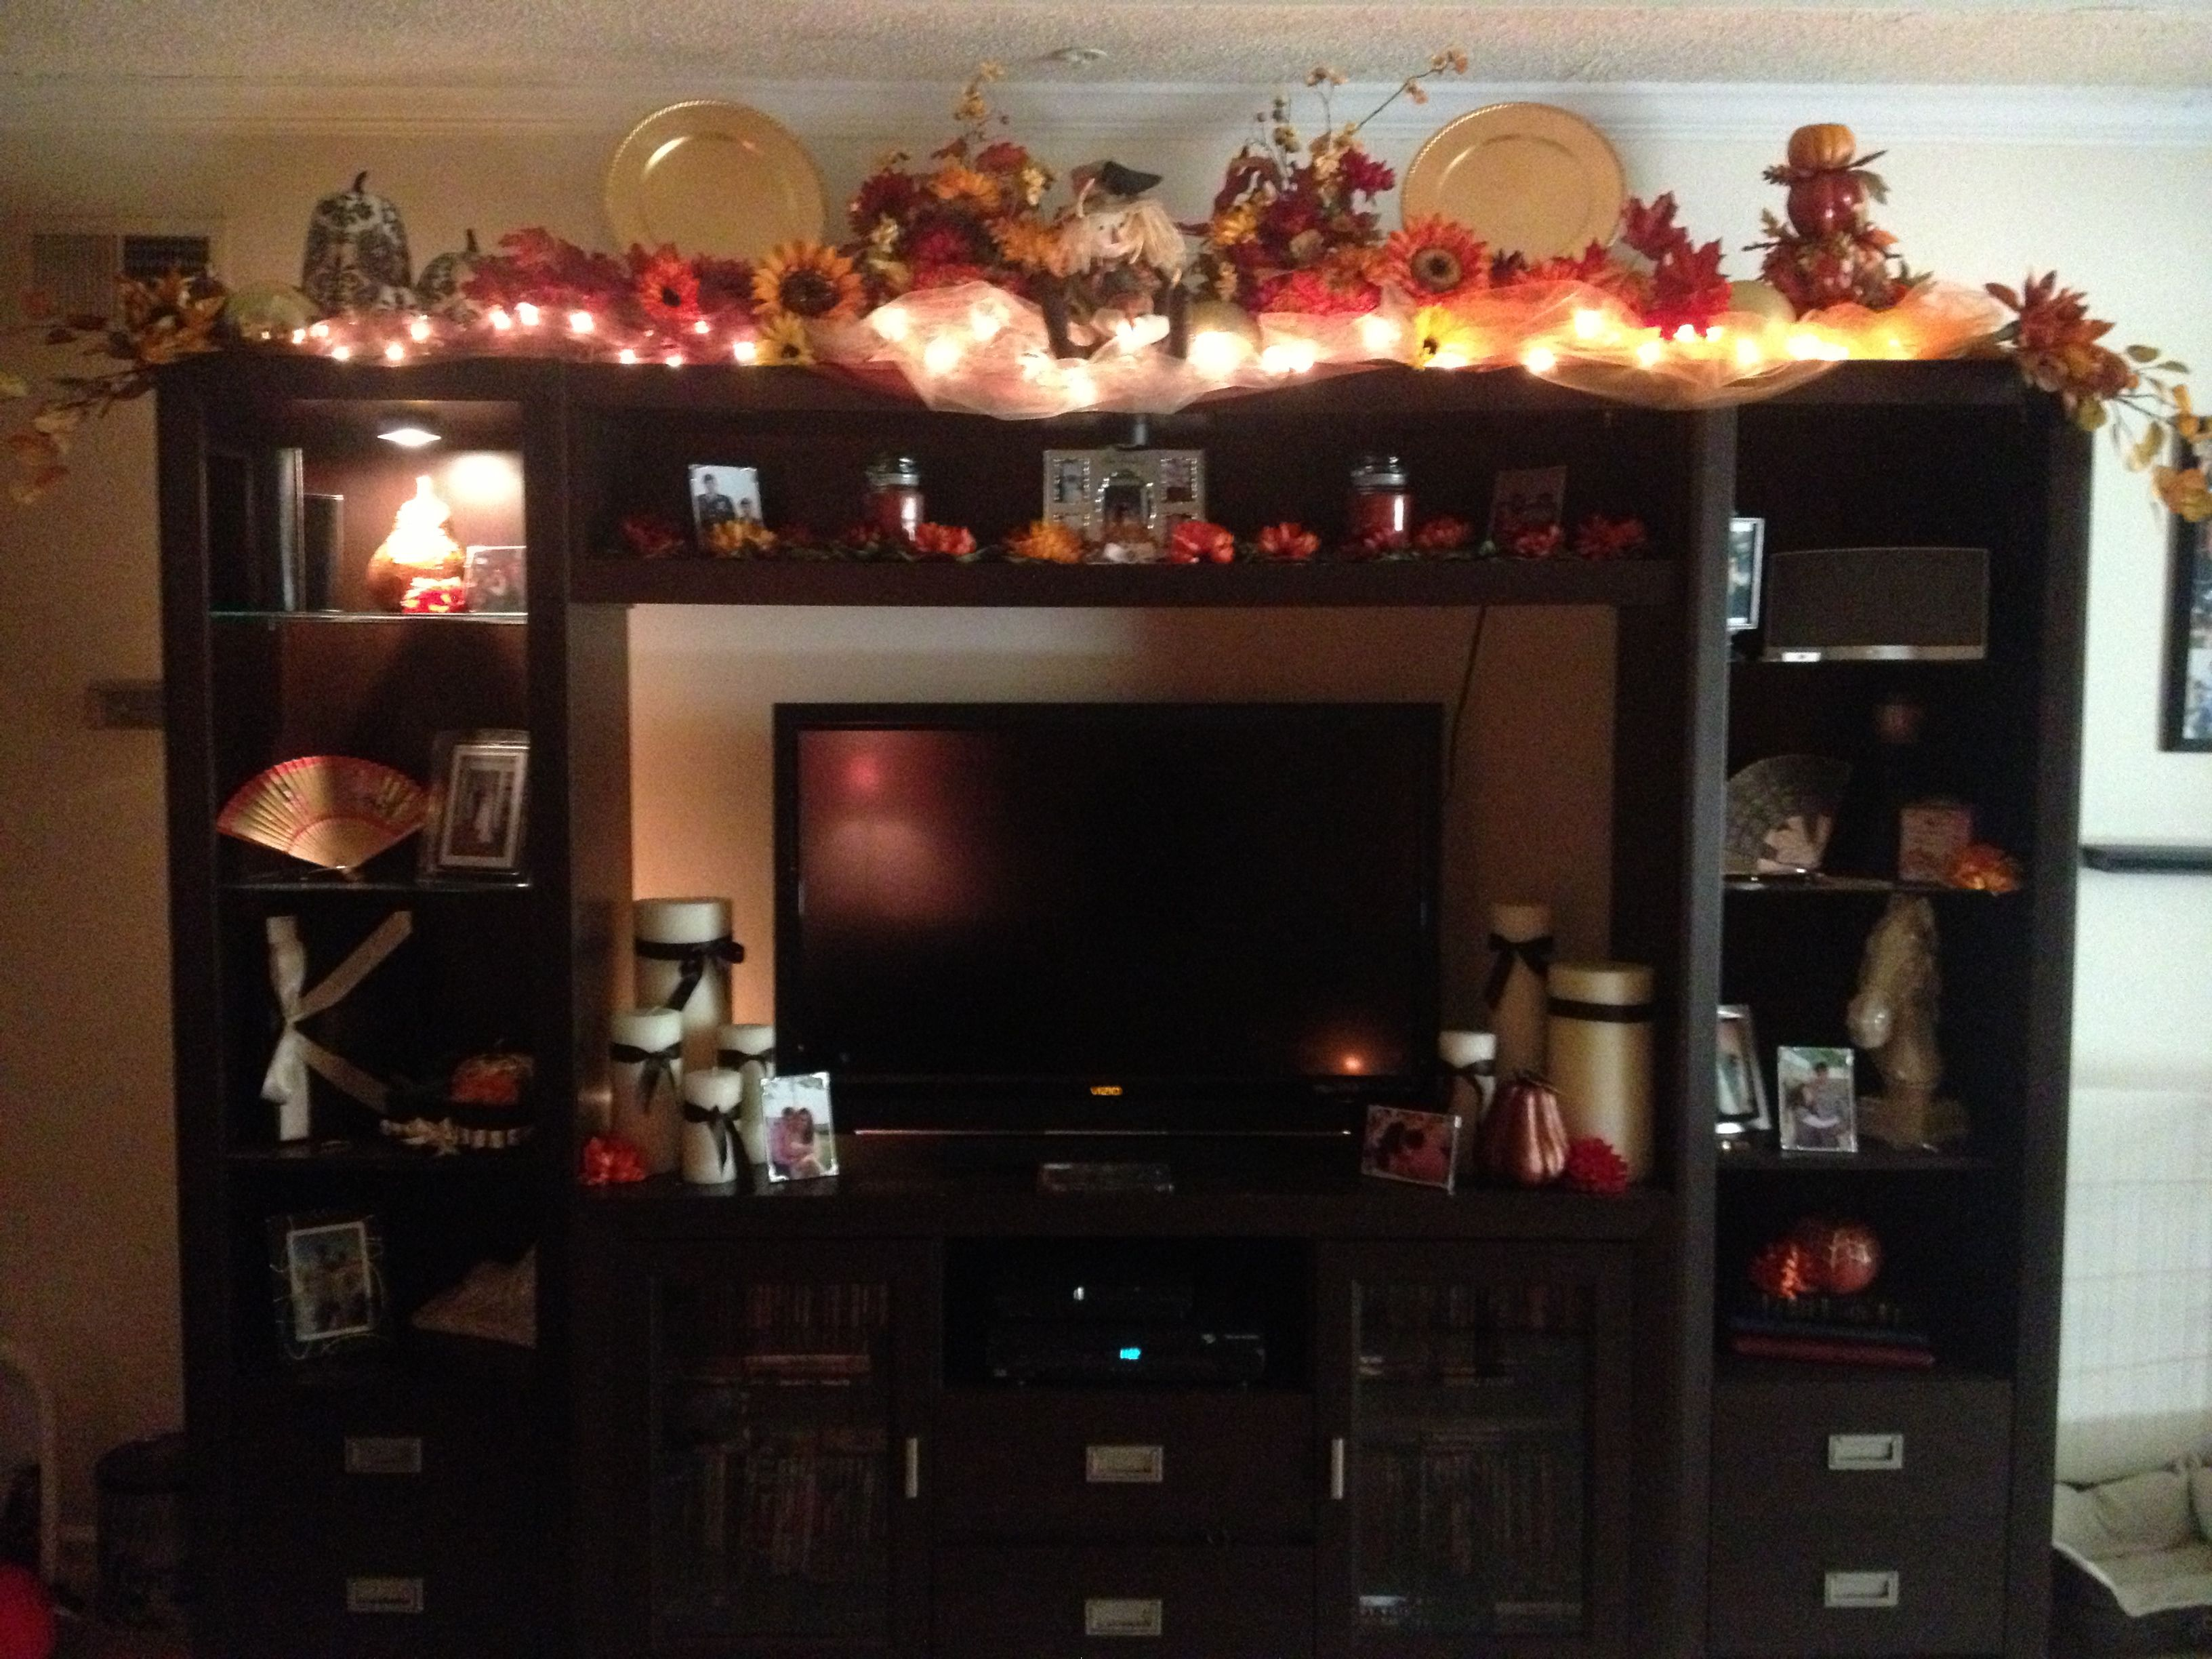 festive season holiday decor for top of entertainment